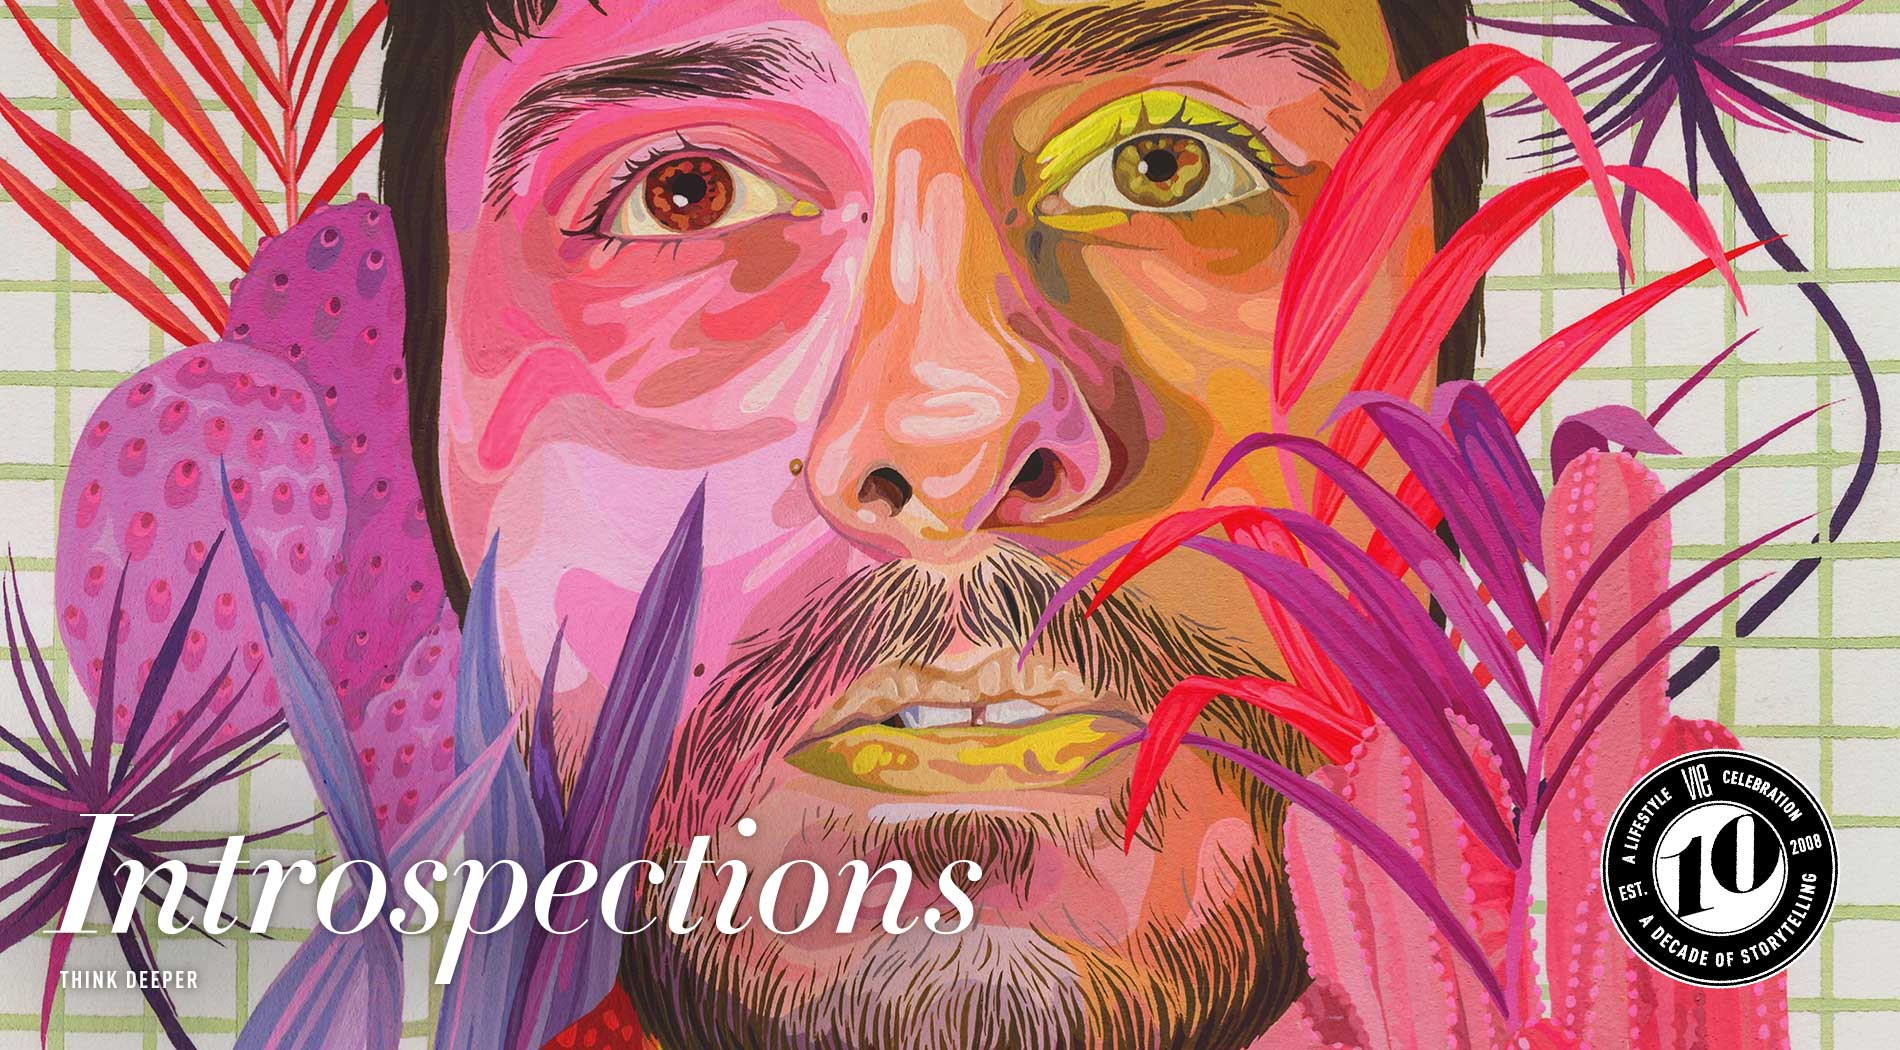 VIE Magazine - The Entertainers Issue - March 2018 - Introspections